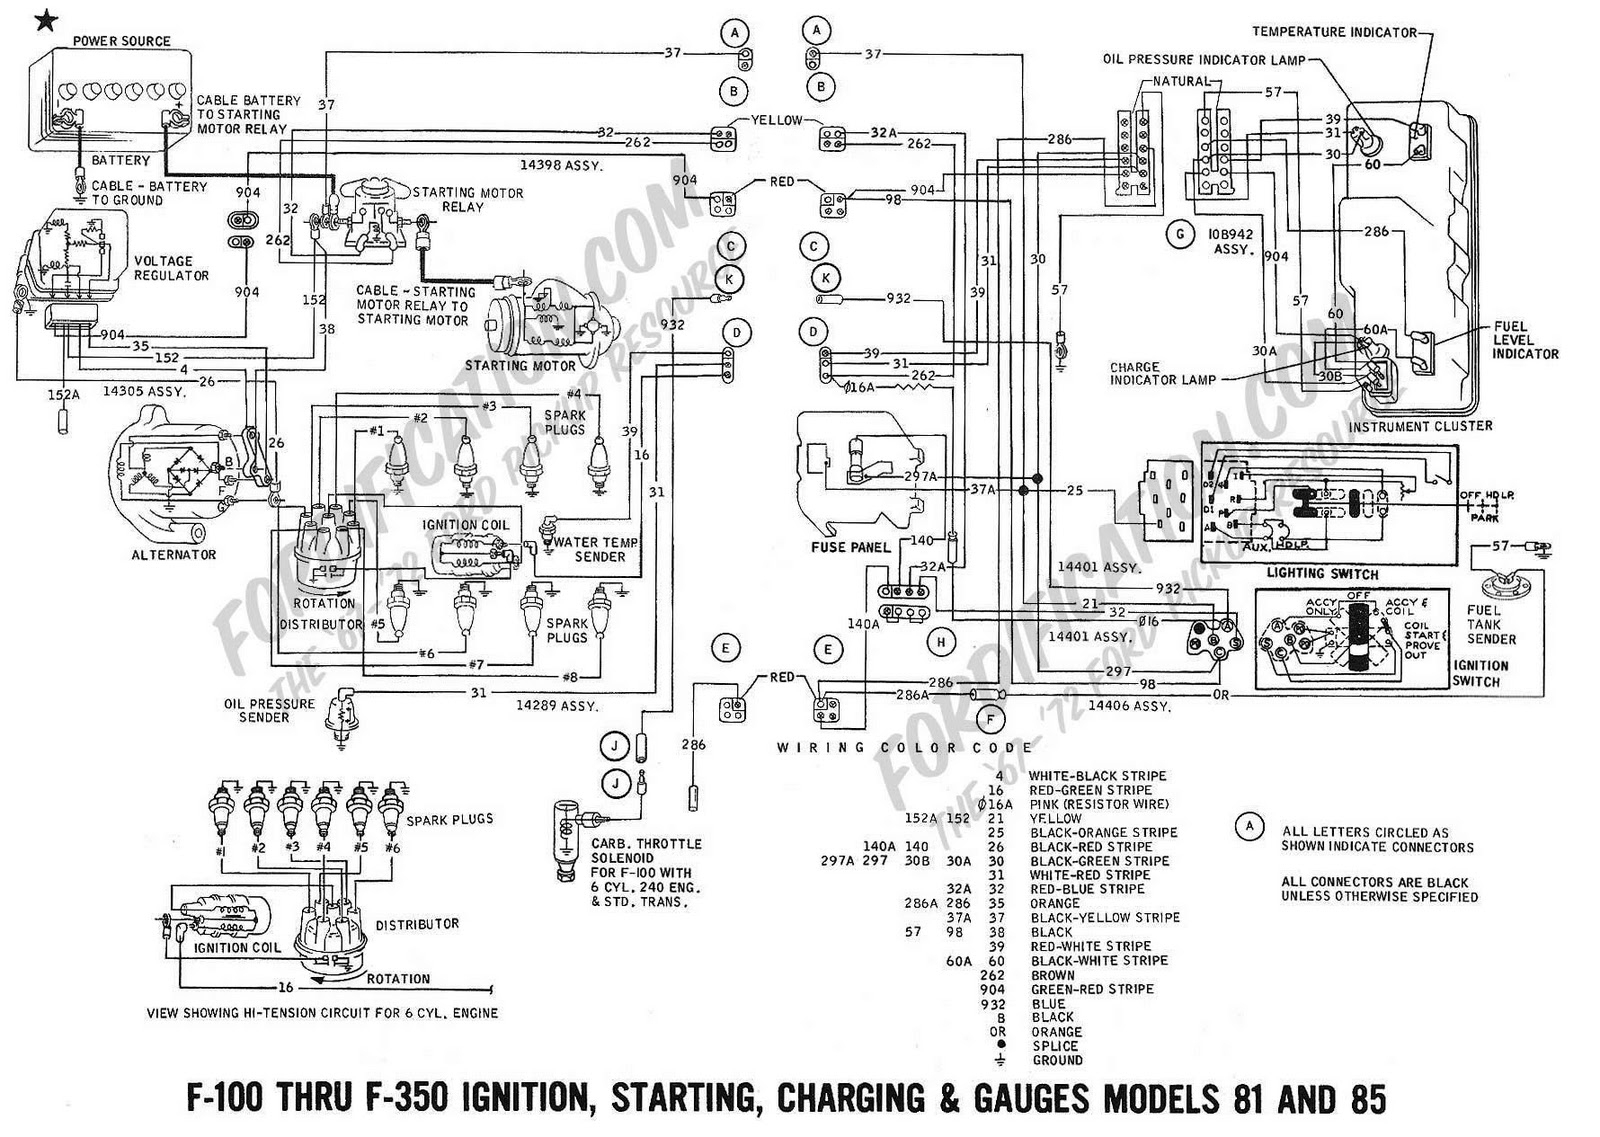 Ford F100 Fuse Box | Wiring Library - Ford F350 Wiring Diagram Free